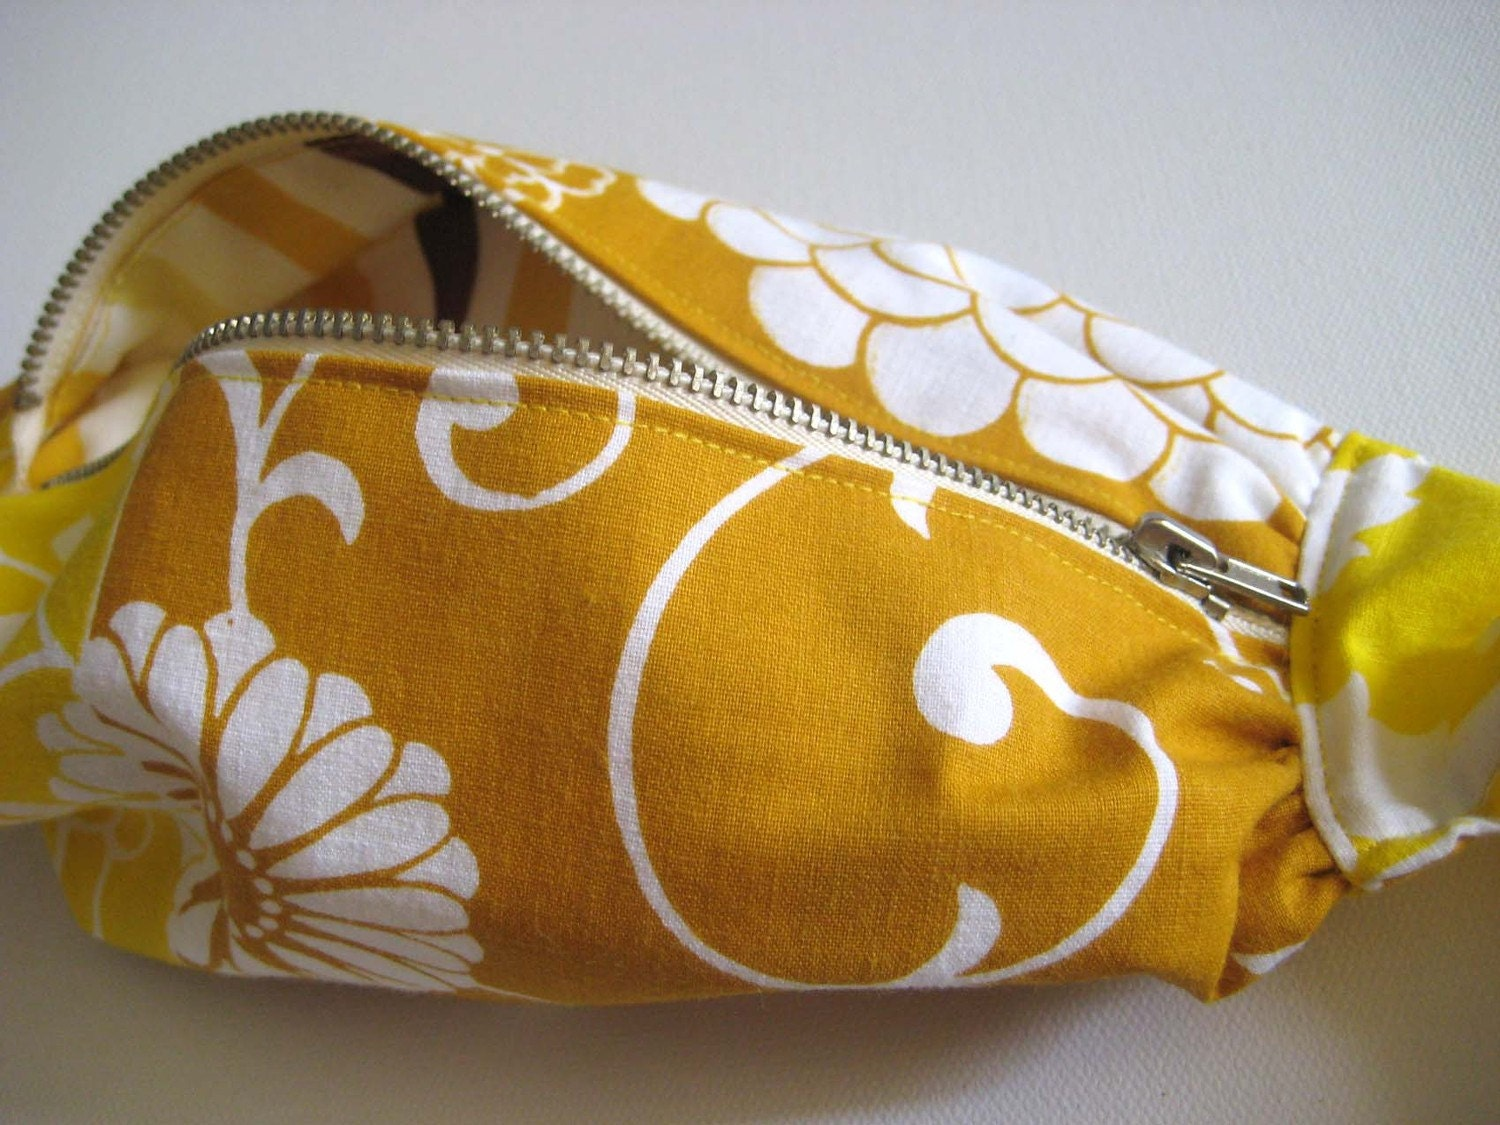 SewNewThings Expandabag -Cross - body handbag with zipper - upcycled vintage fabric in Gold and Caramel